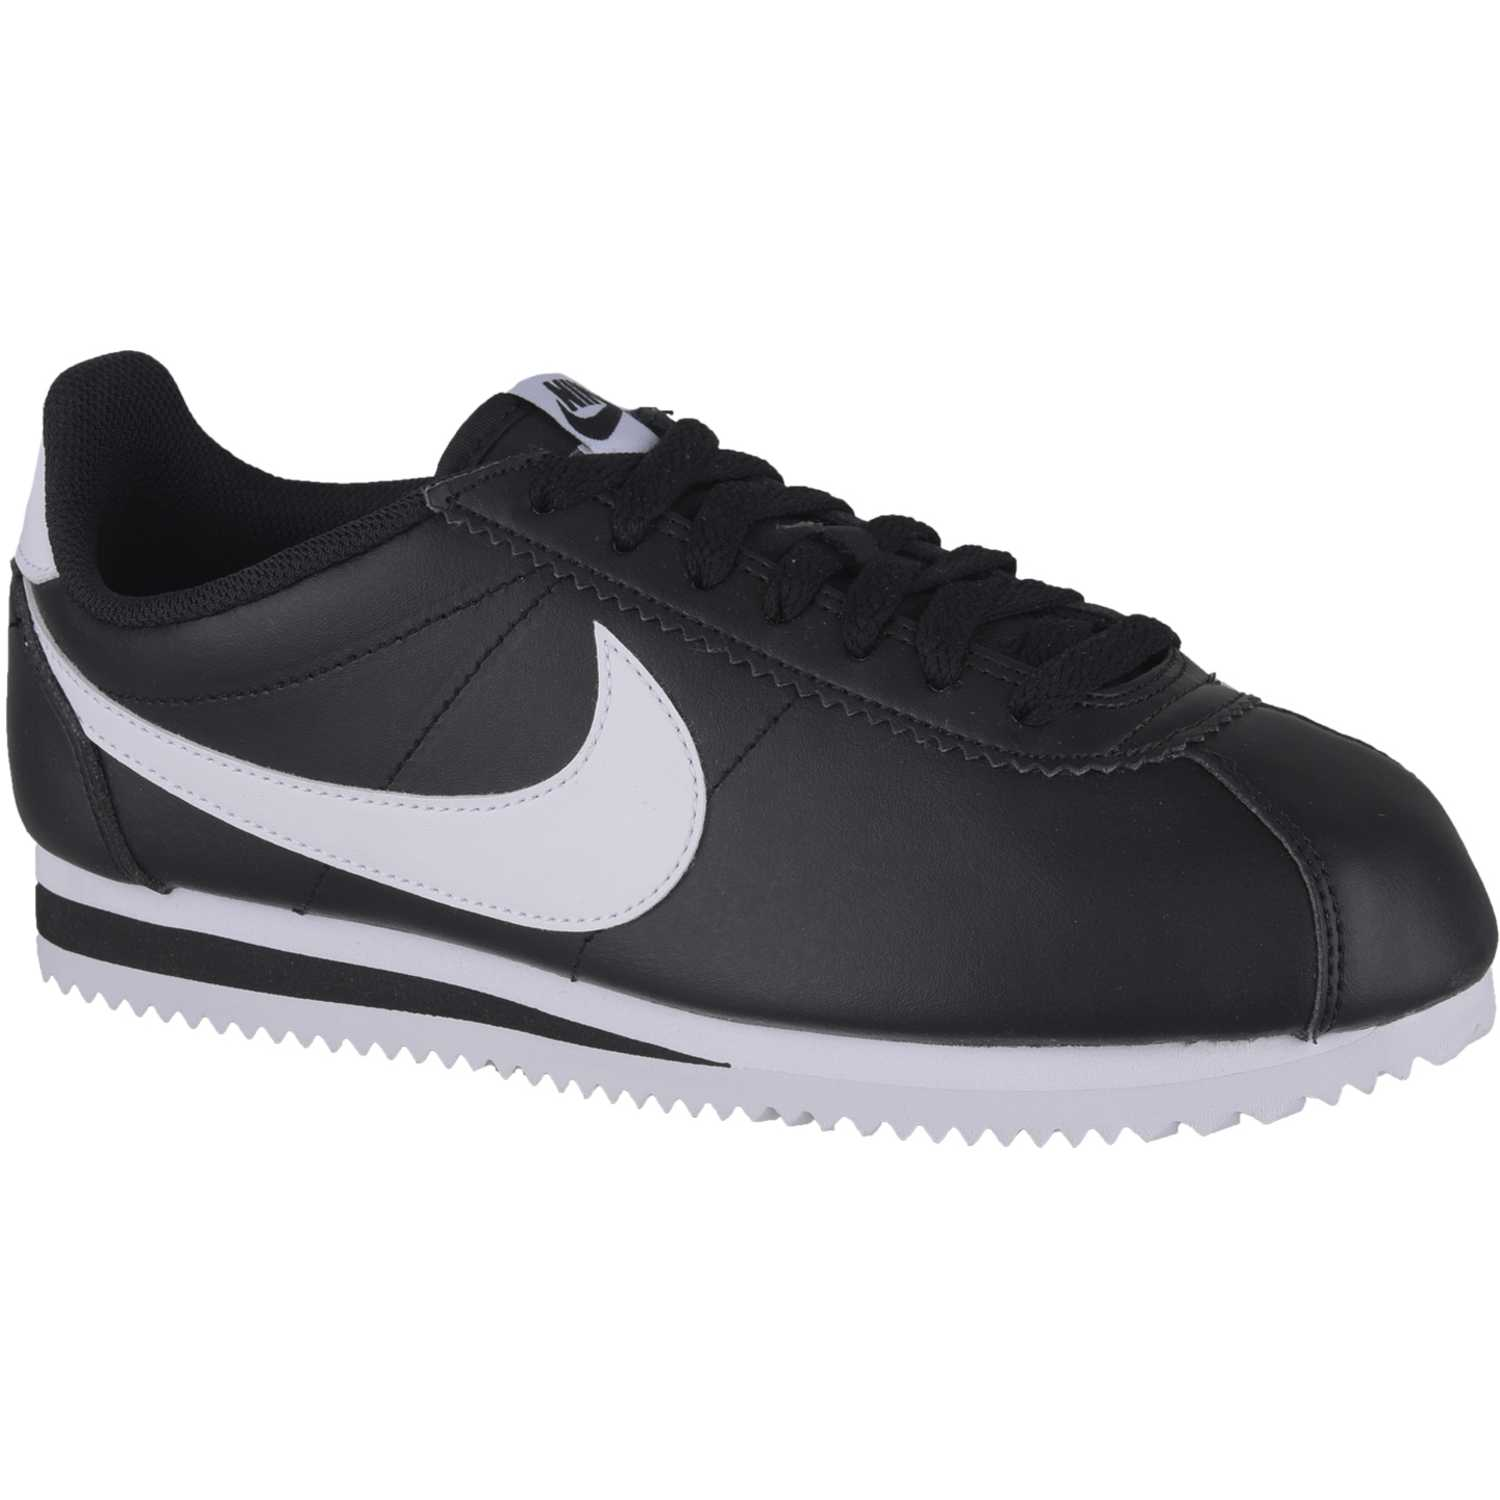 Nike wmns classic cortez leather Negro / blanco Walking